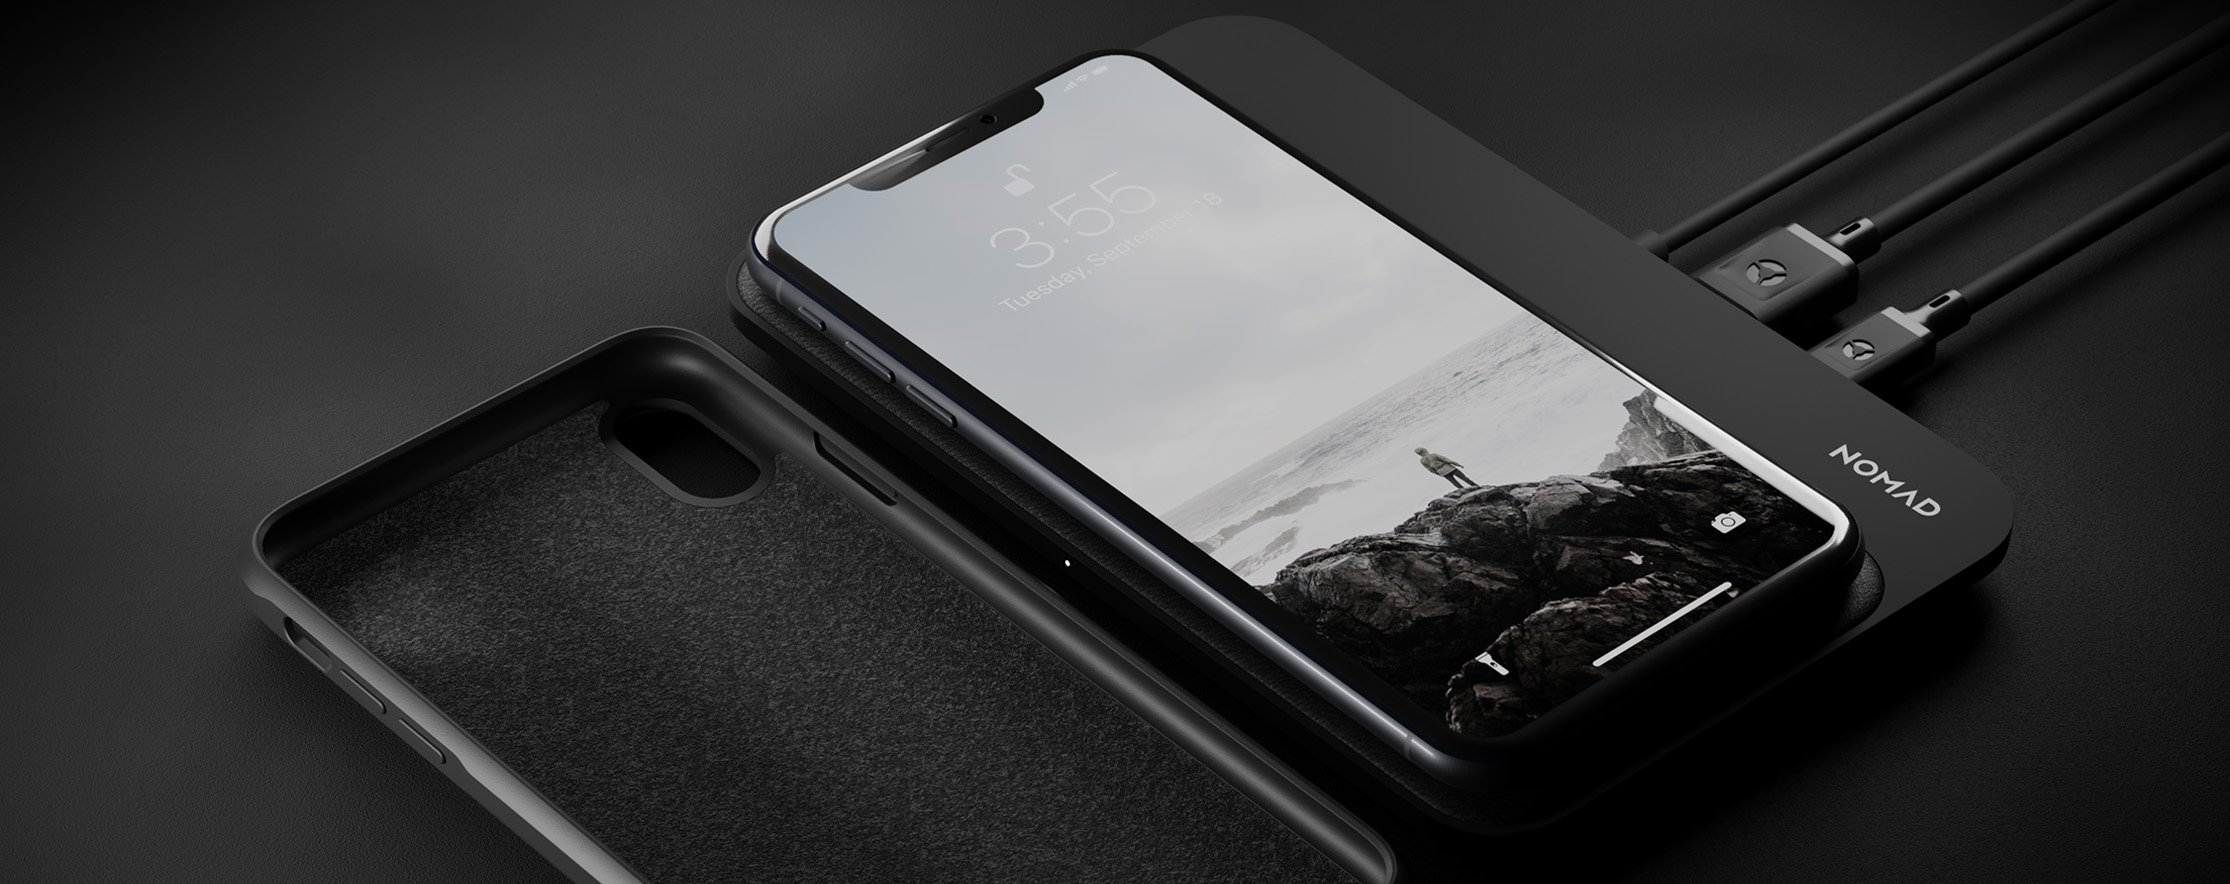 nomad-rugged-case-iphone-xs-max-malaysia-overview-malaysia-5